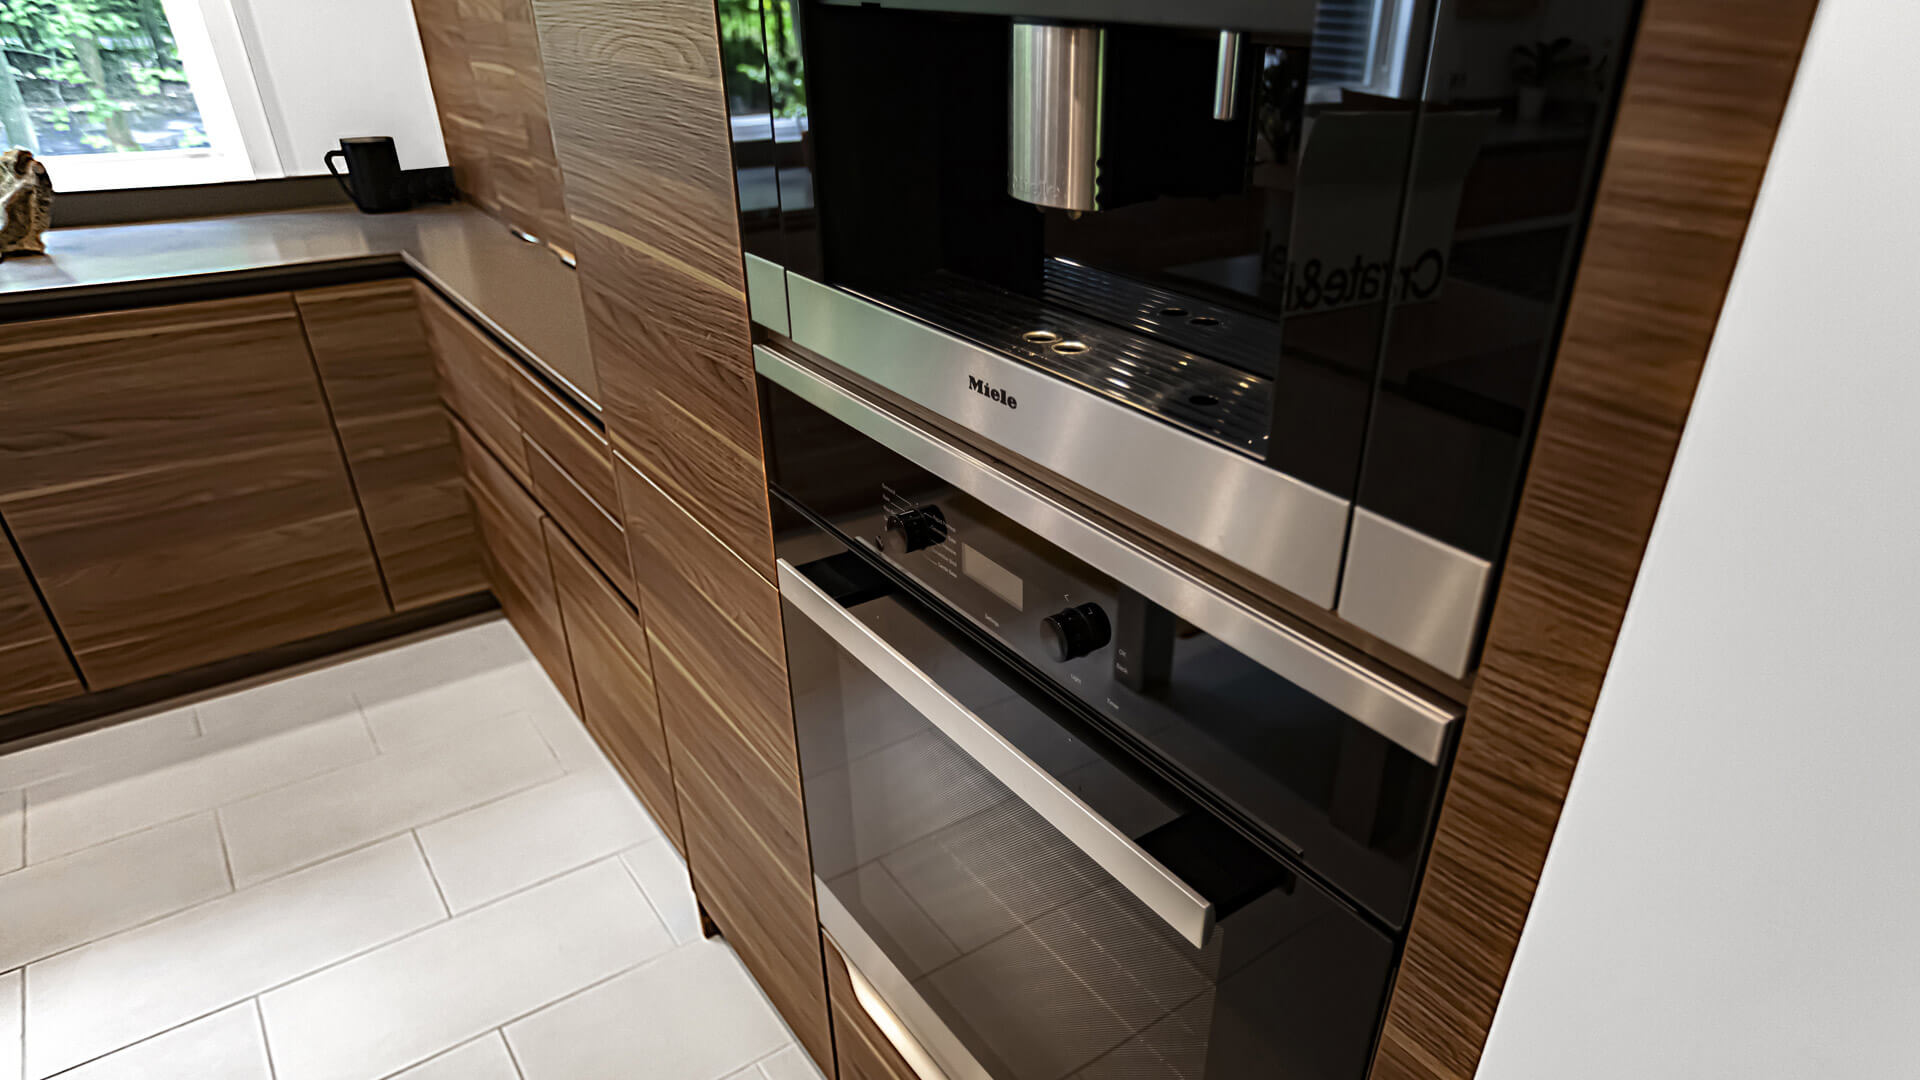 Miele Coffee Station + Wall Range Units integrate seamlessly into Leicht kitchen cabinetry - Bridge House - Fennville, Michigan - Lake Michigan